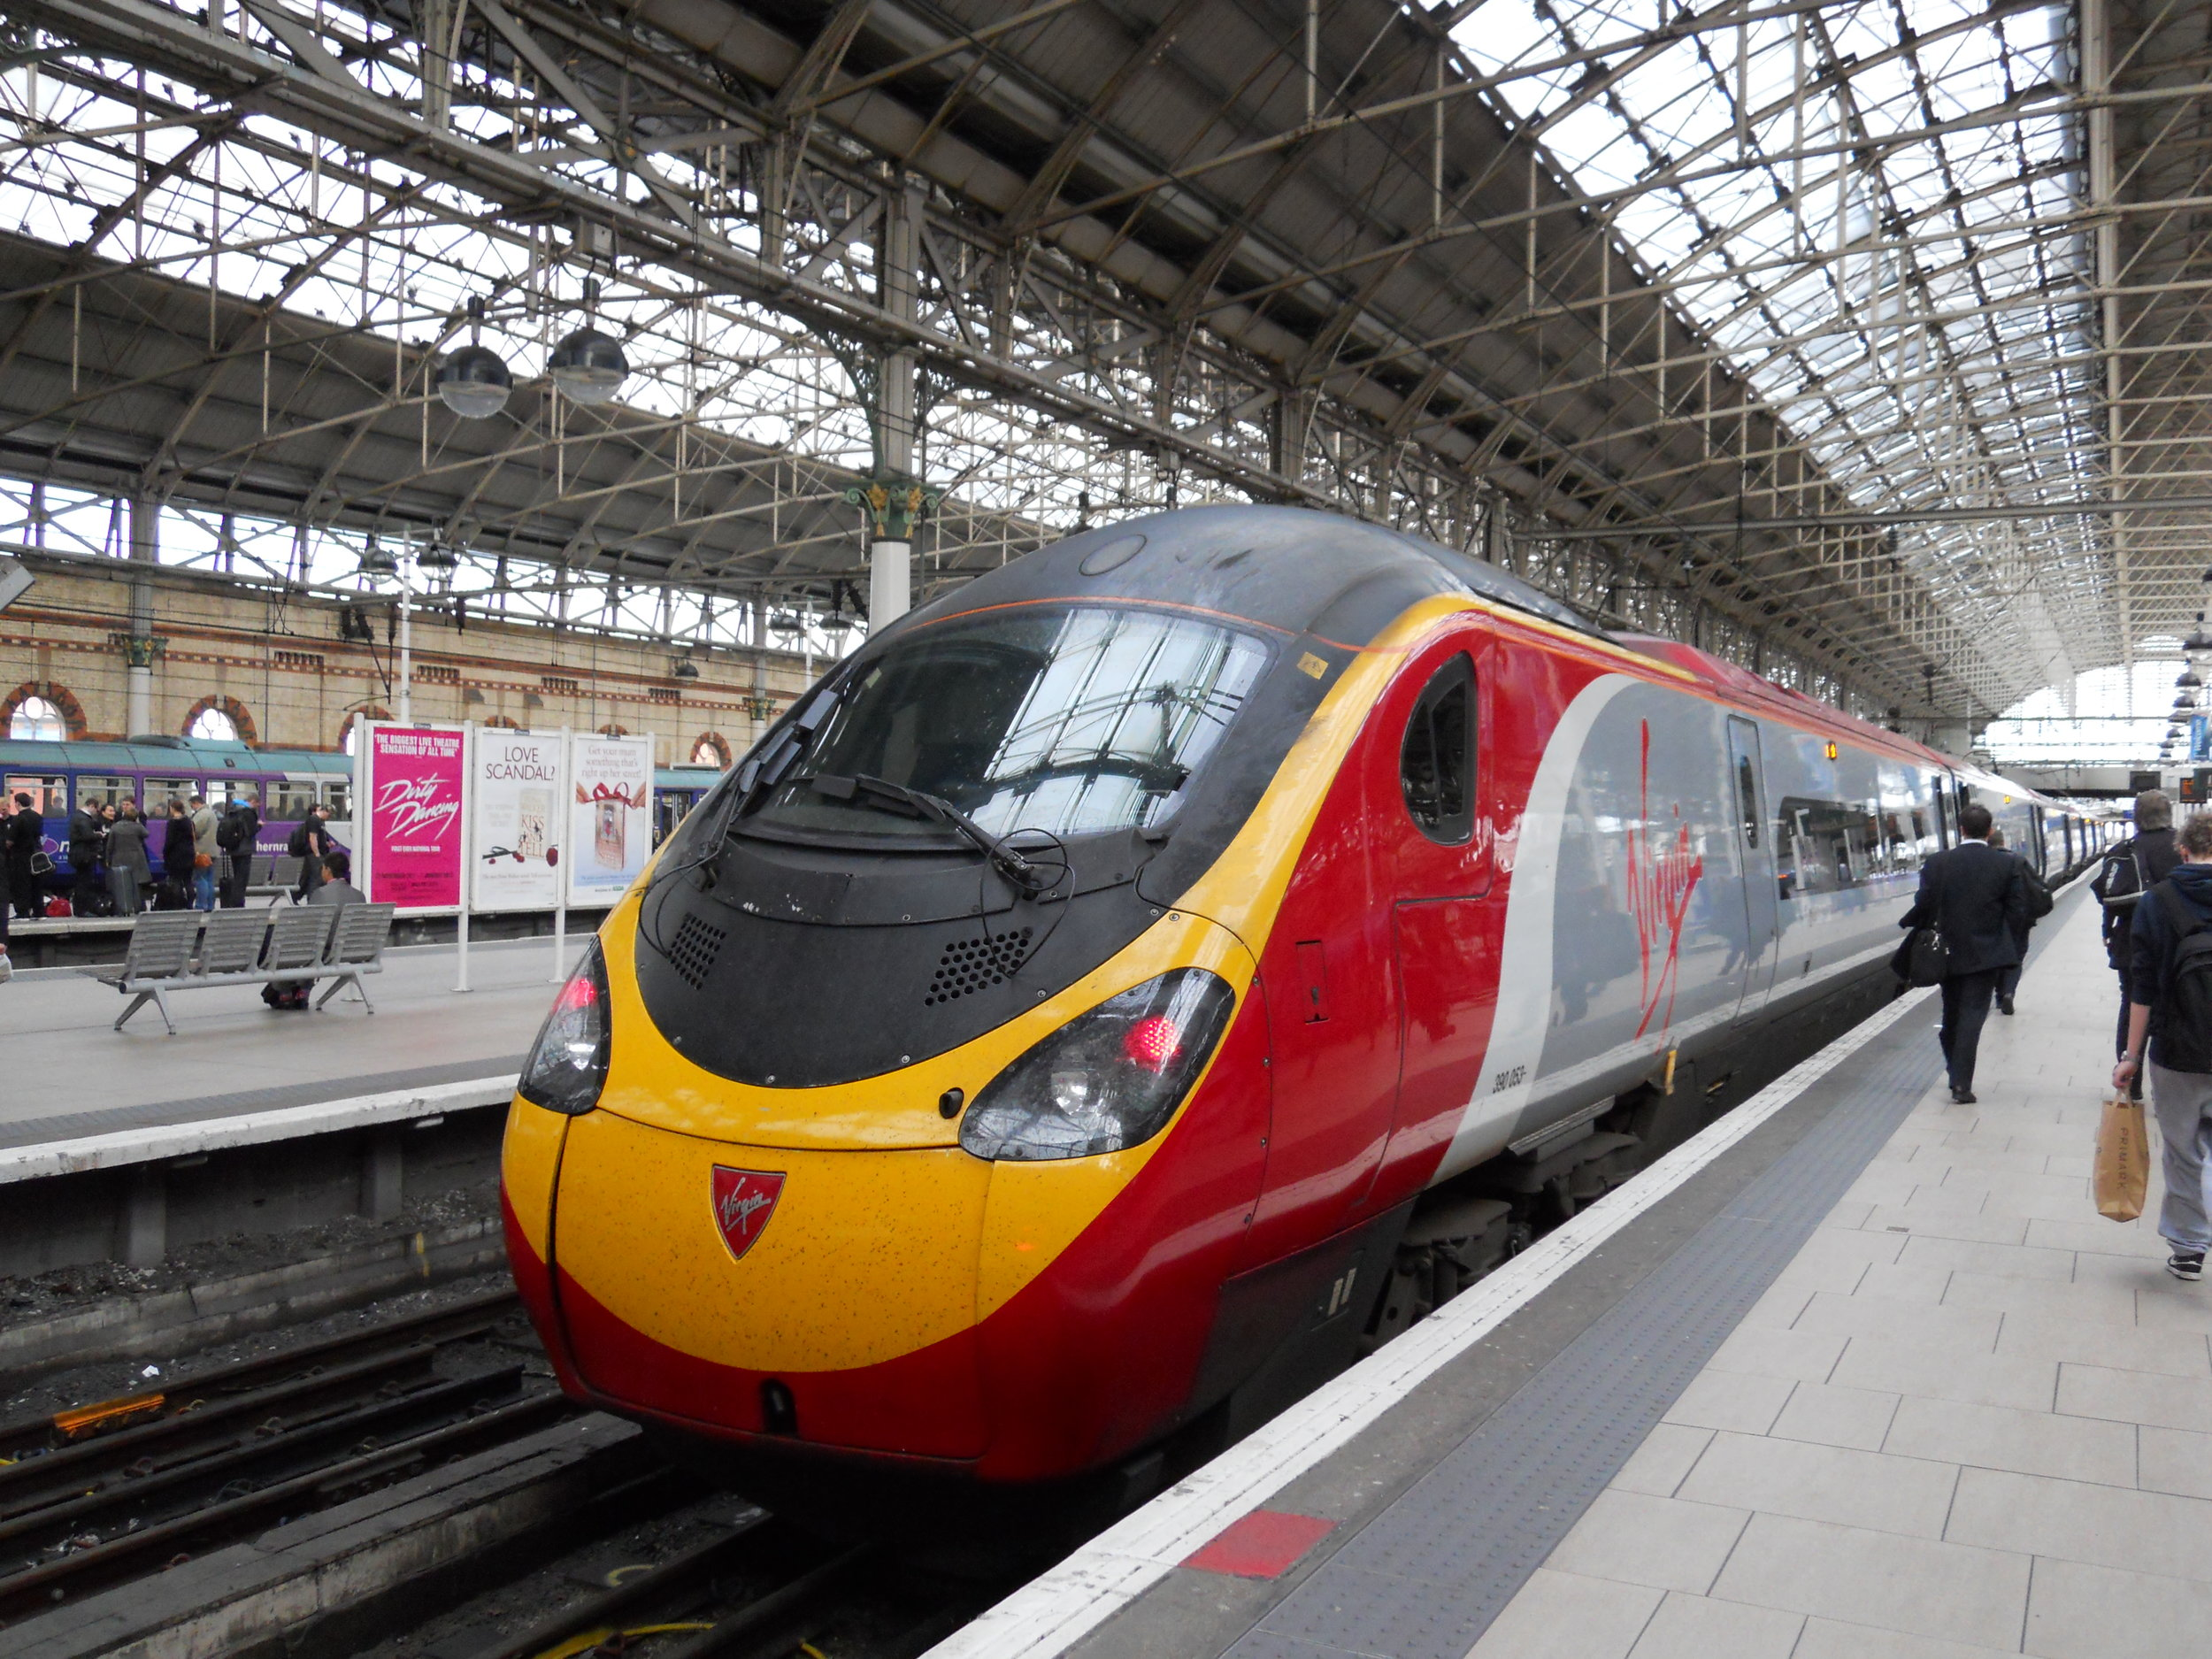 Virgin Trains Are Named After Failure